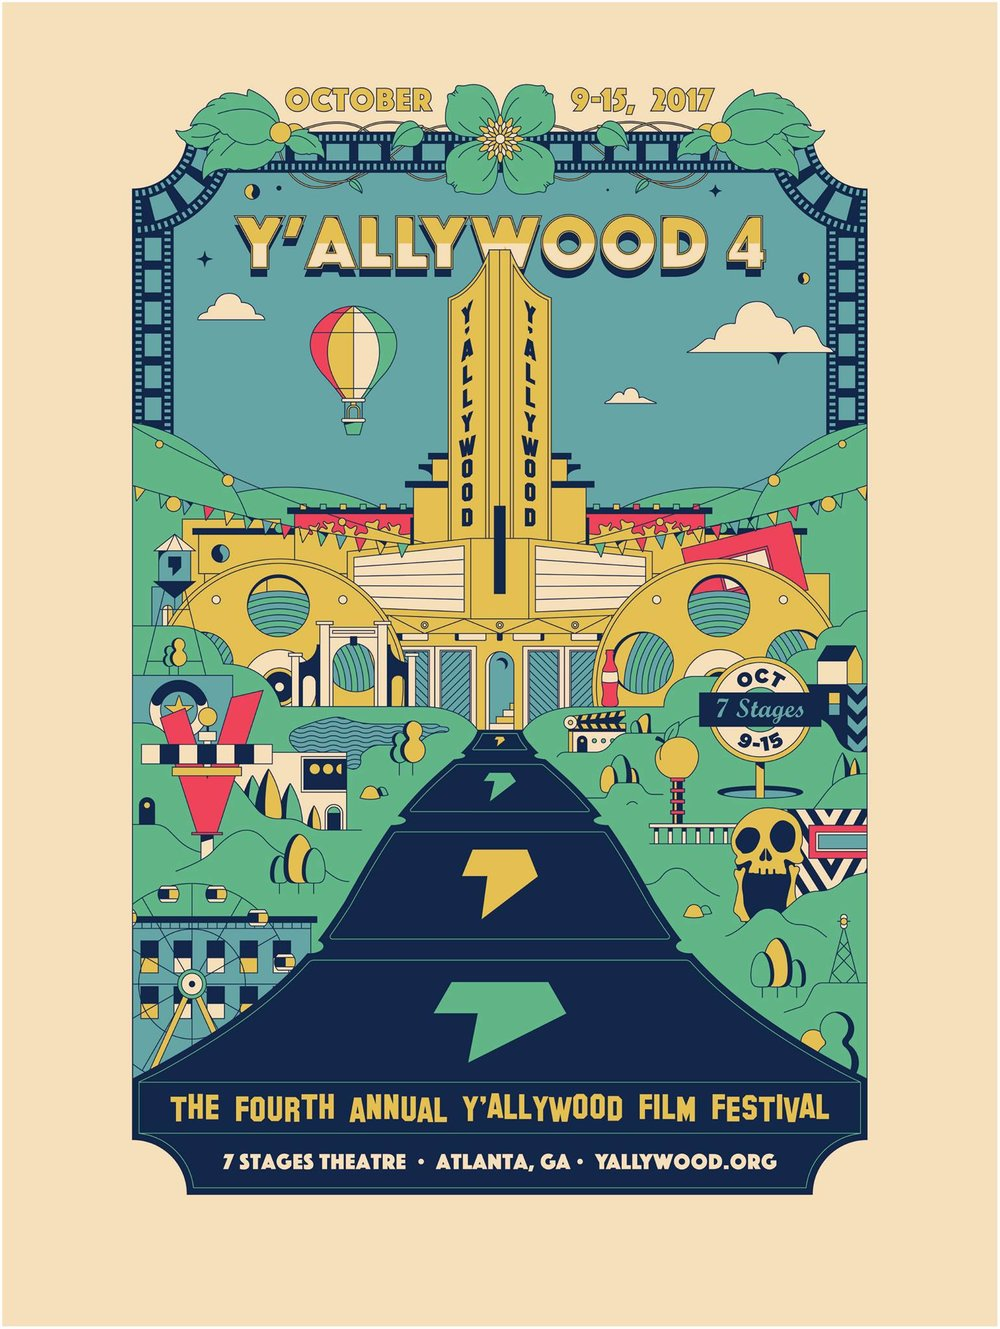 Y'allywood local film festival returns for its 4th year all week.